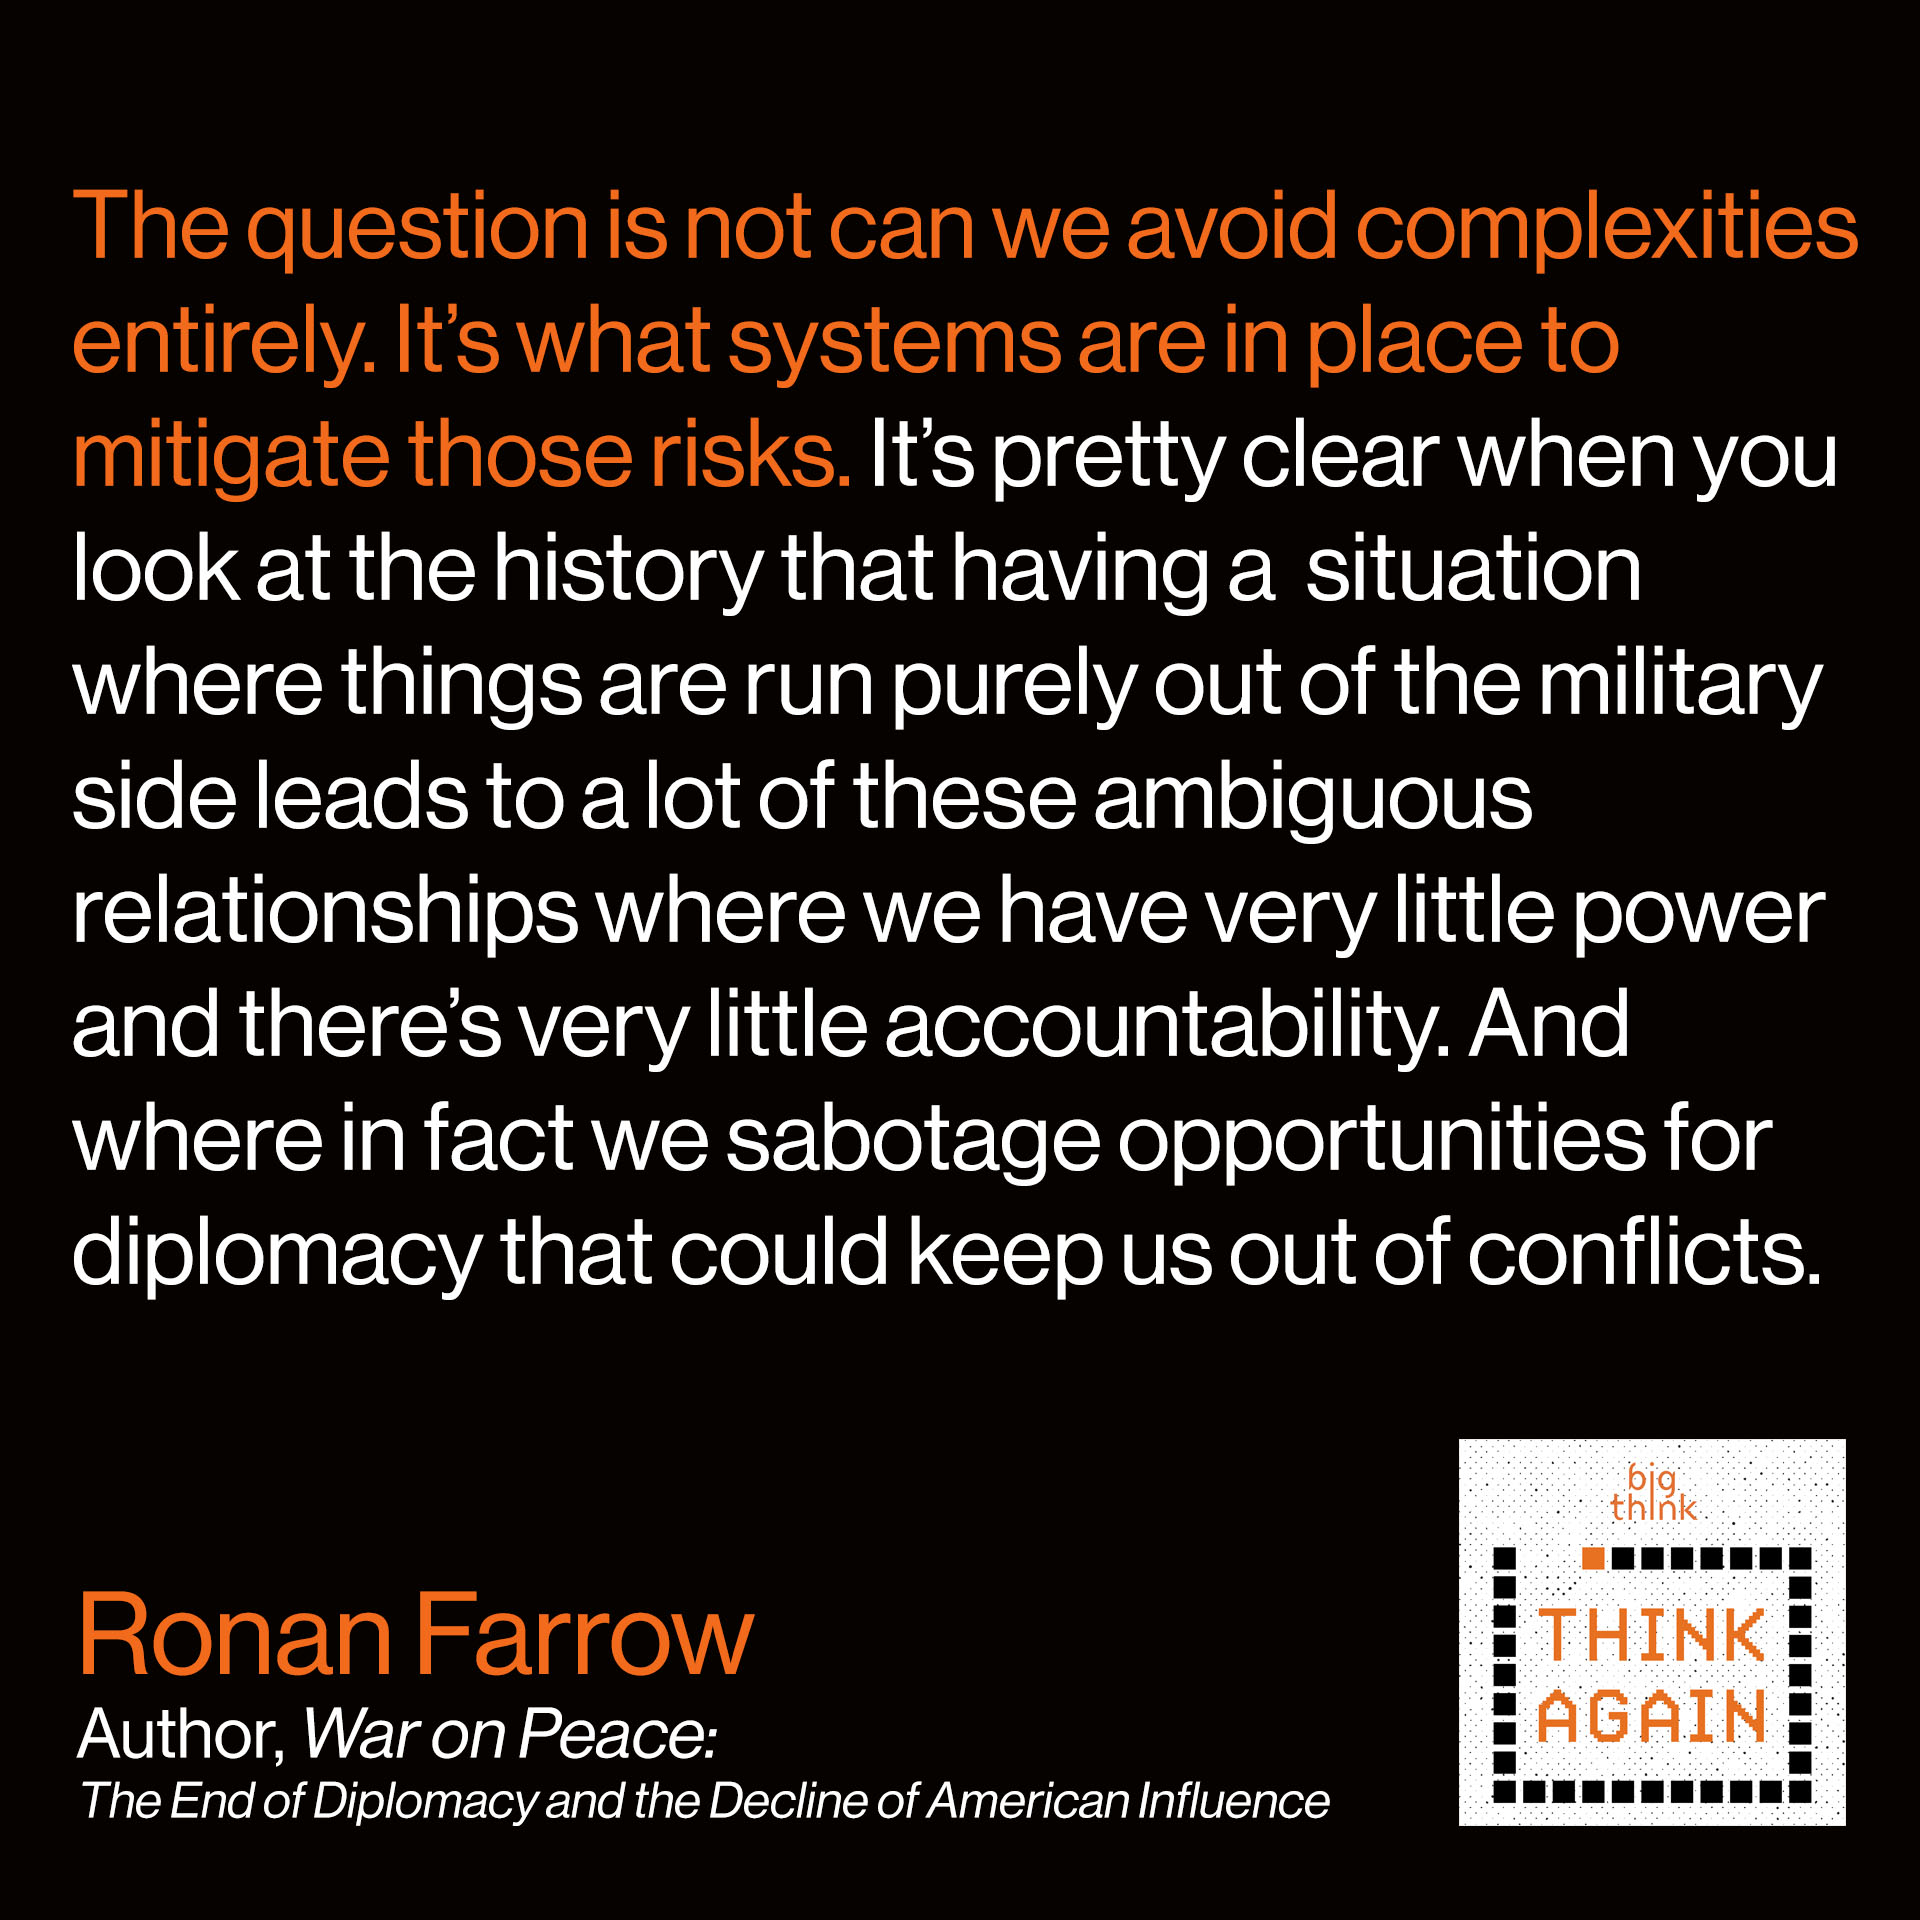 Ronan Farrow Quote: The question is not can we avoid complexities entirely. It's what systems are in place to mitigate those risks. And it's pretty clear when you look at the history that having a situation where things are run purely out of the military side leads to a lot of these relationships where we have very little power and there's very little accountability. And where in fact we sabotage opportunities for diplomacy that could keep us out of conflicts.